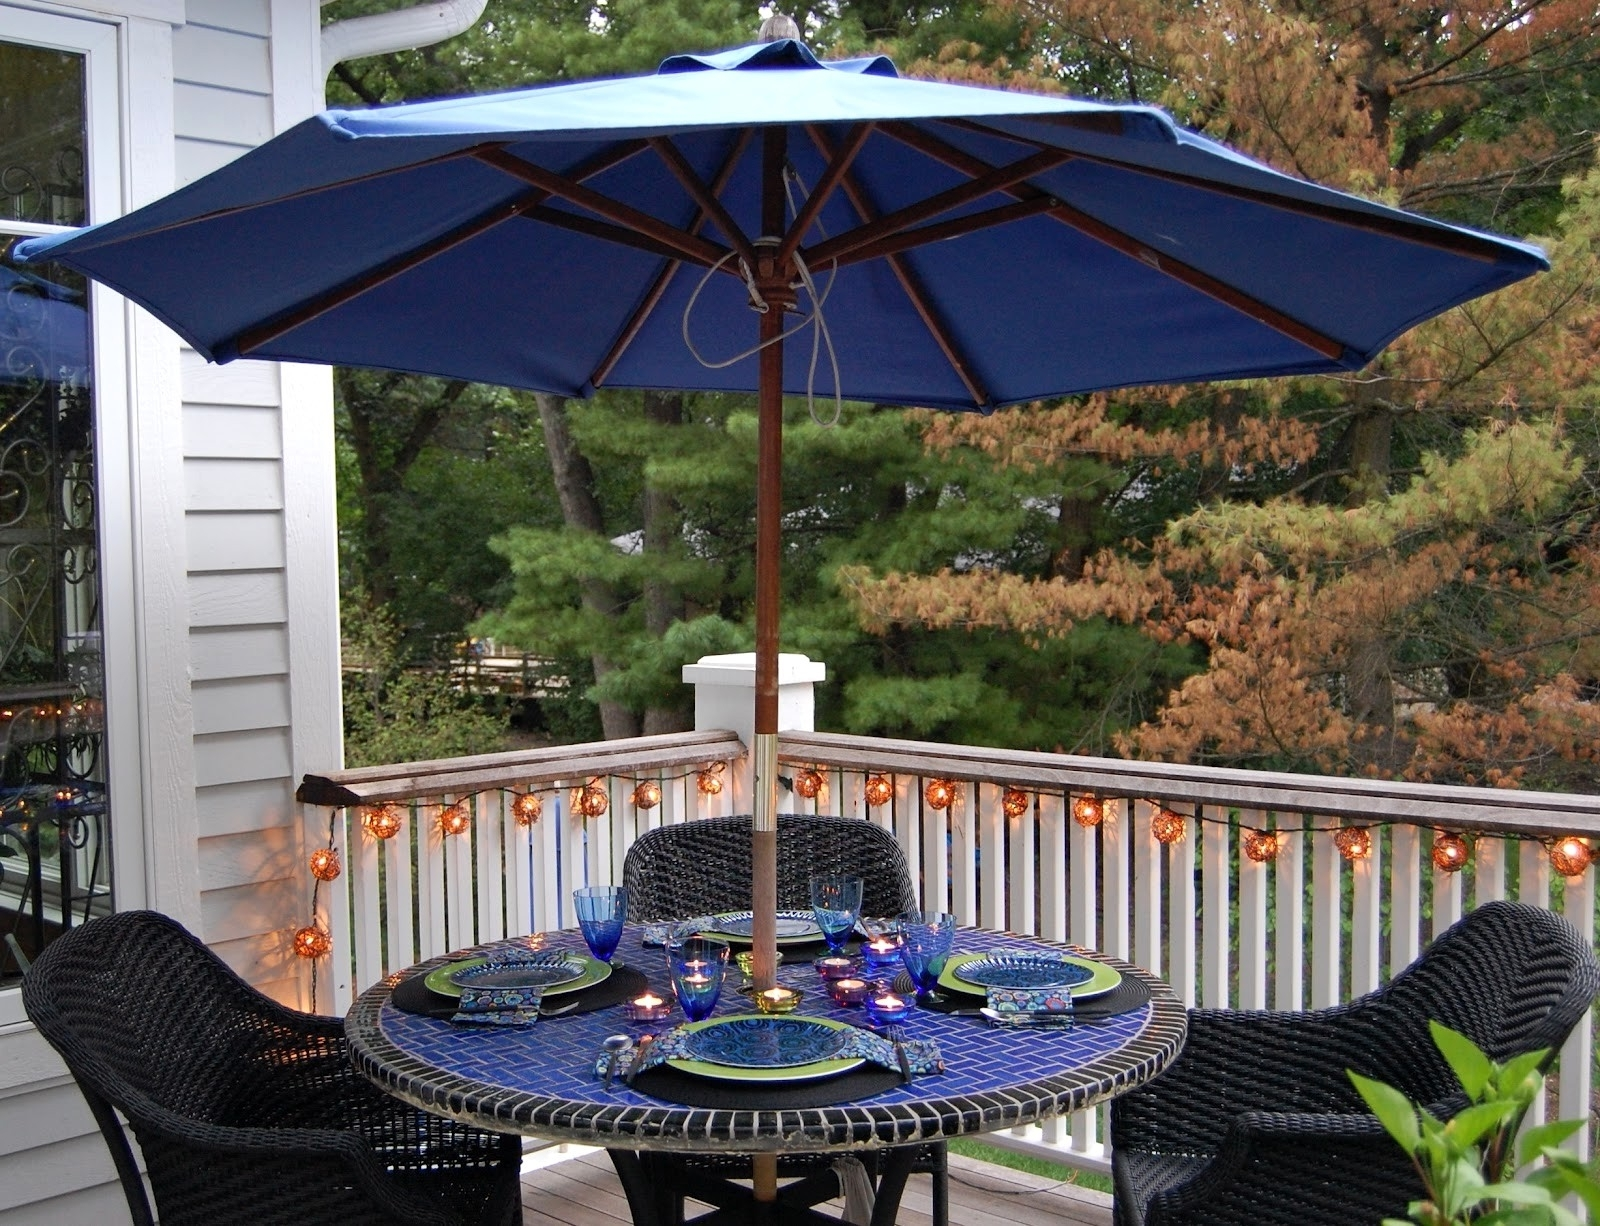 Fashionable Outdoor Patio Furniture Sets With Umbrella Enjoy Your Summer Time Regarding Patio Sets With Umbrellas (View 6 of 20)